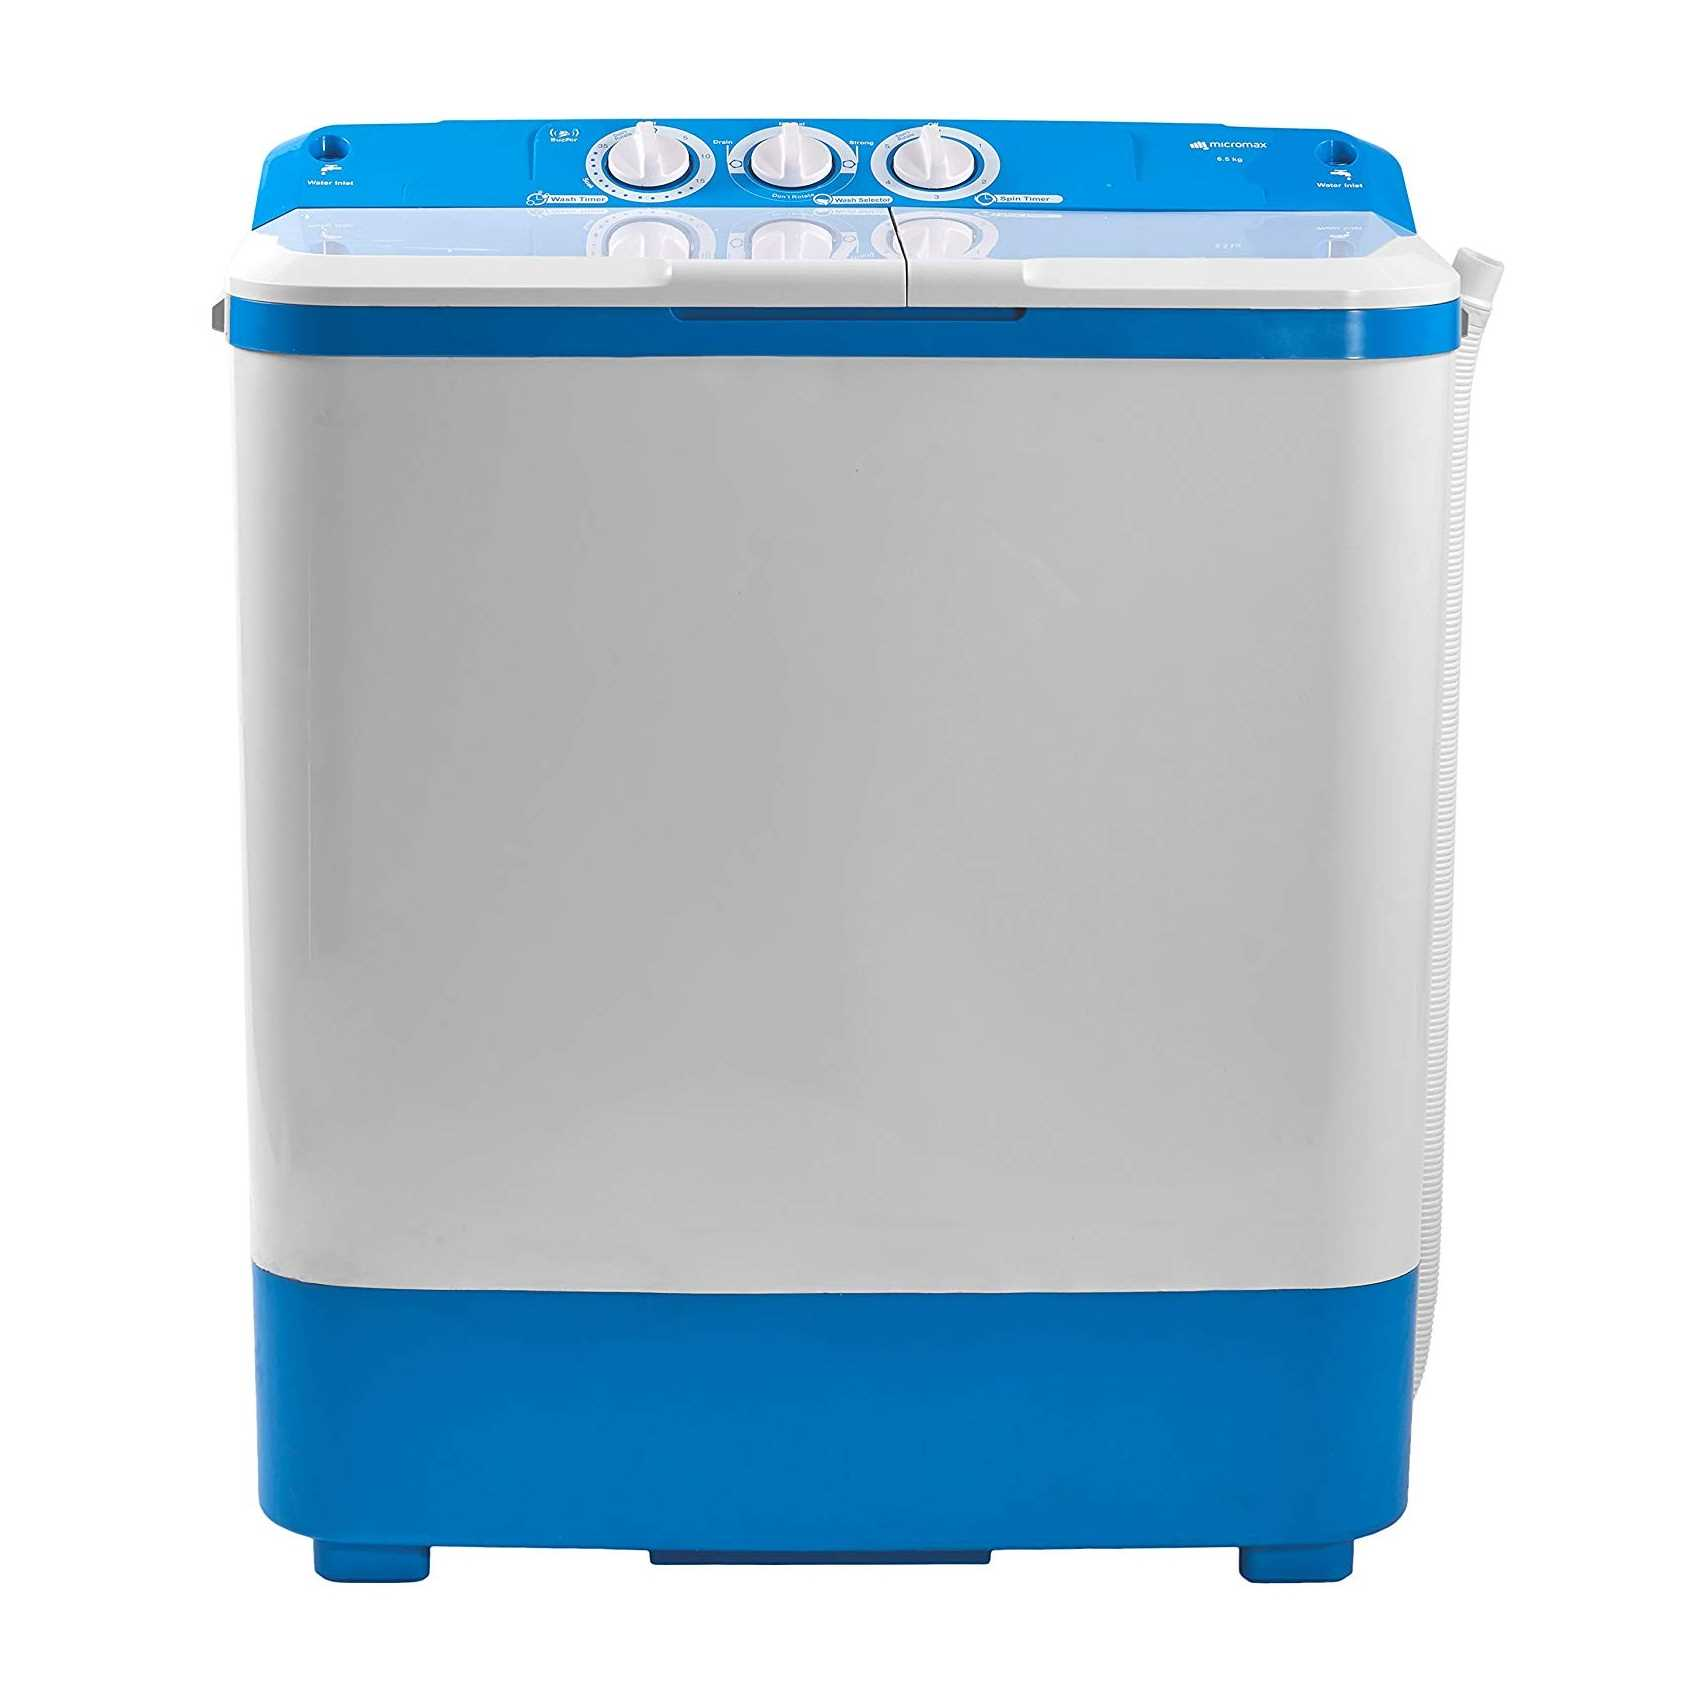 Micromax MWMSA6510VRS1 6.5 kg Semi Automatic Top Loading Washing Machine